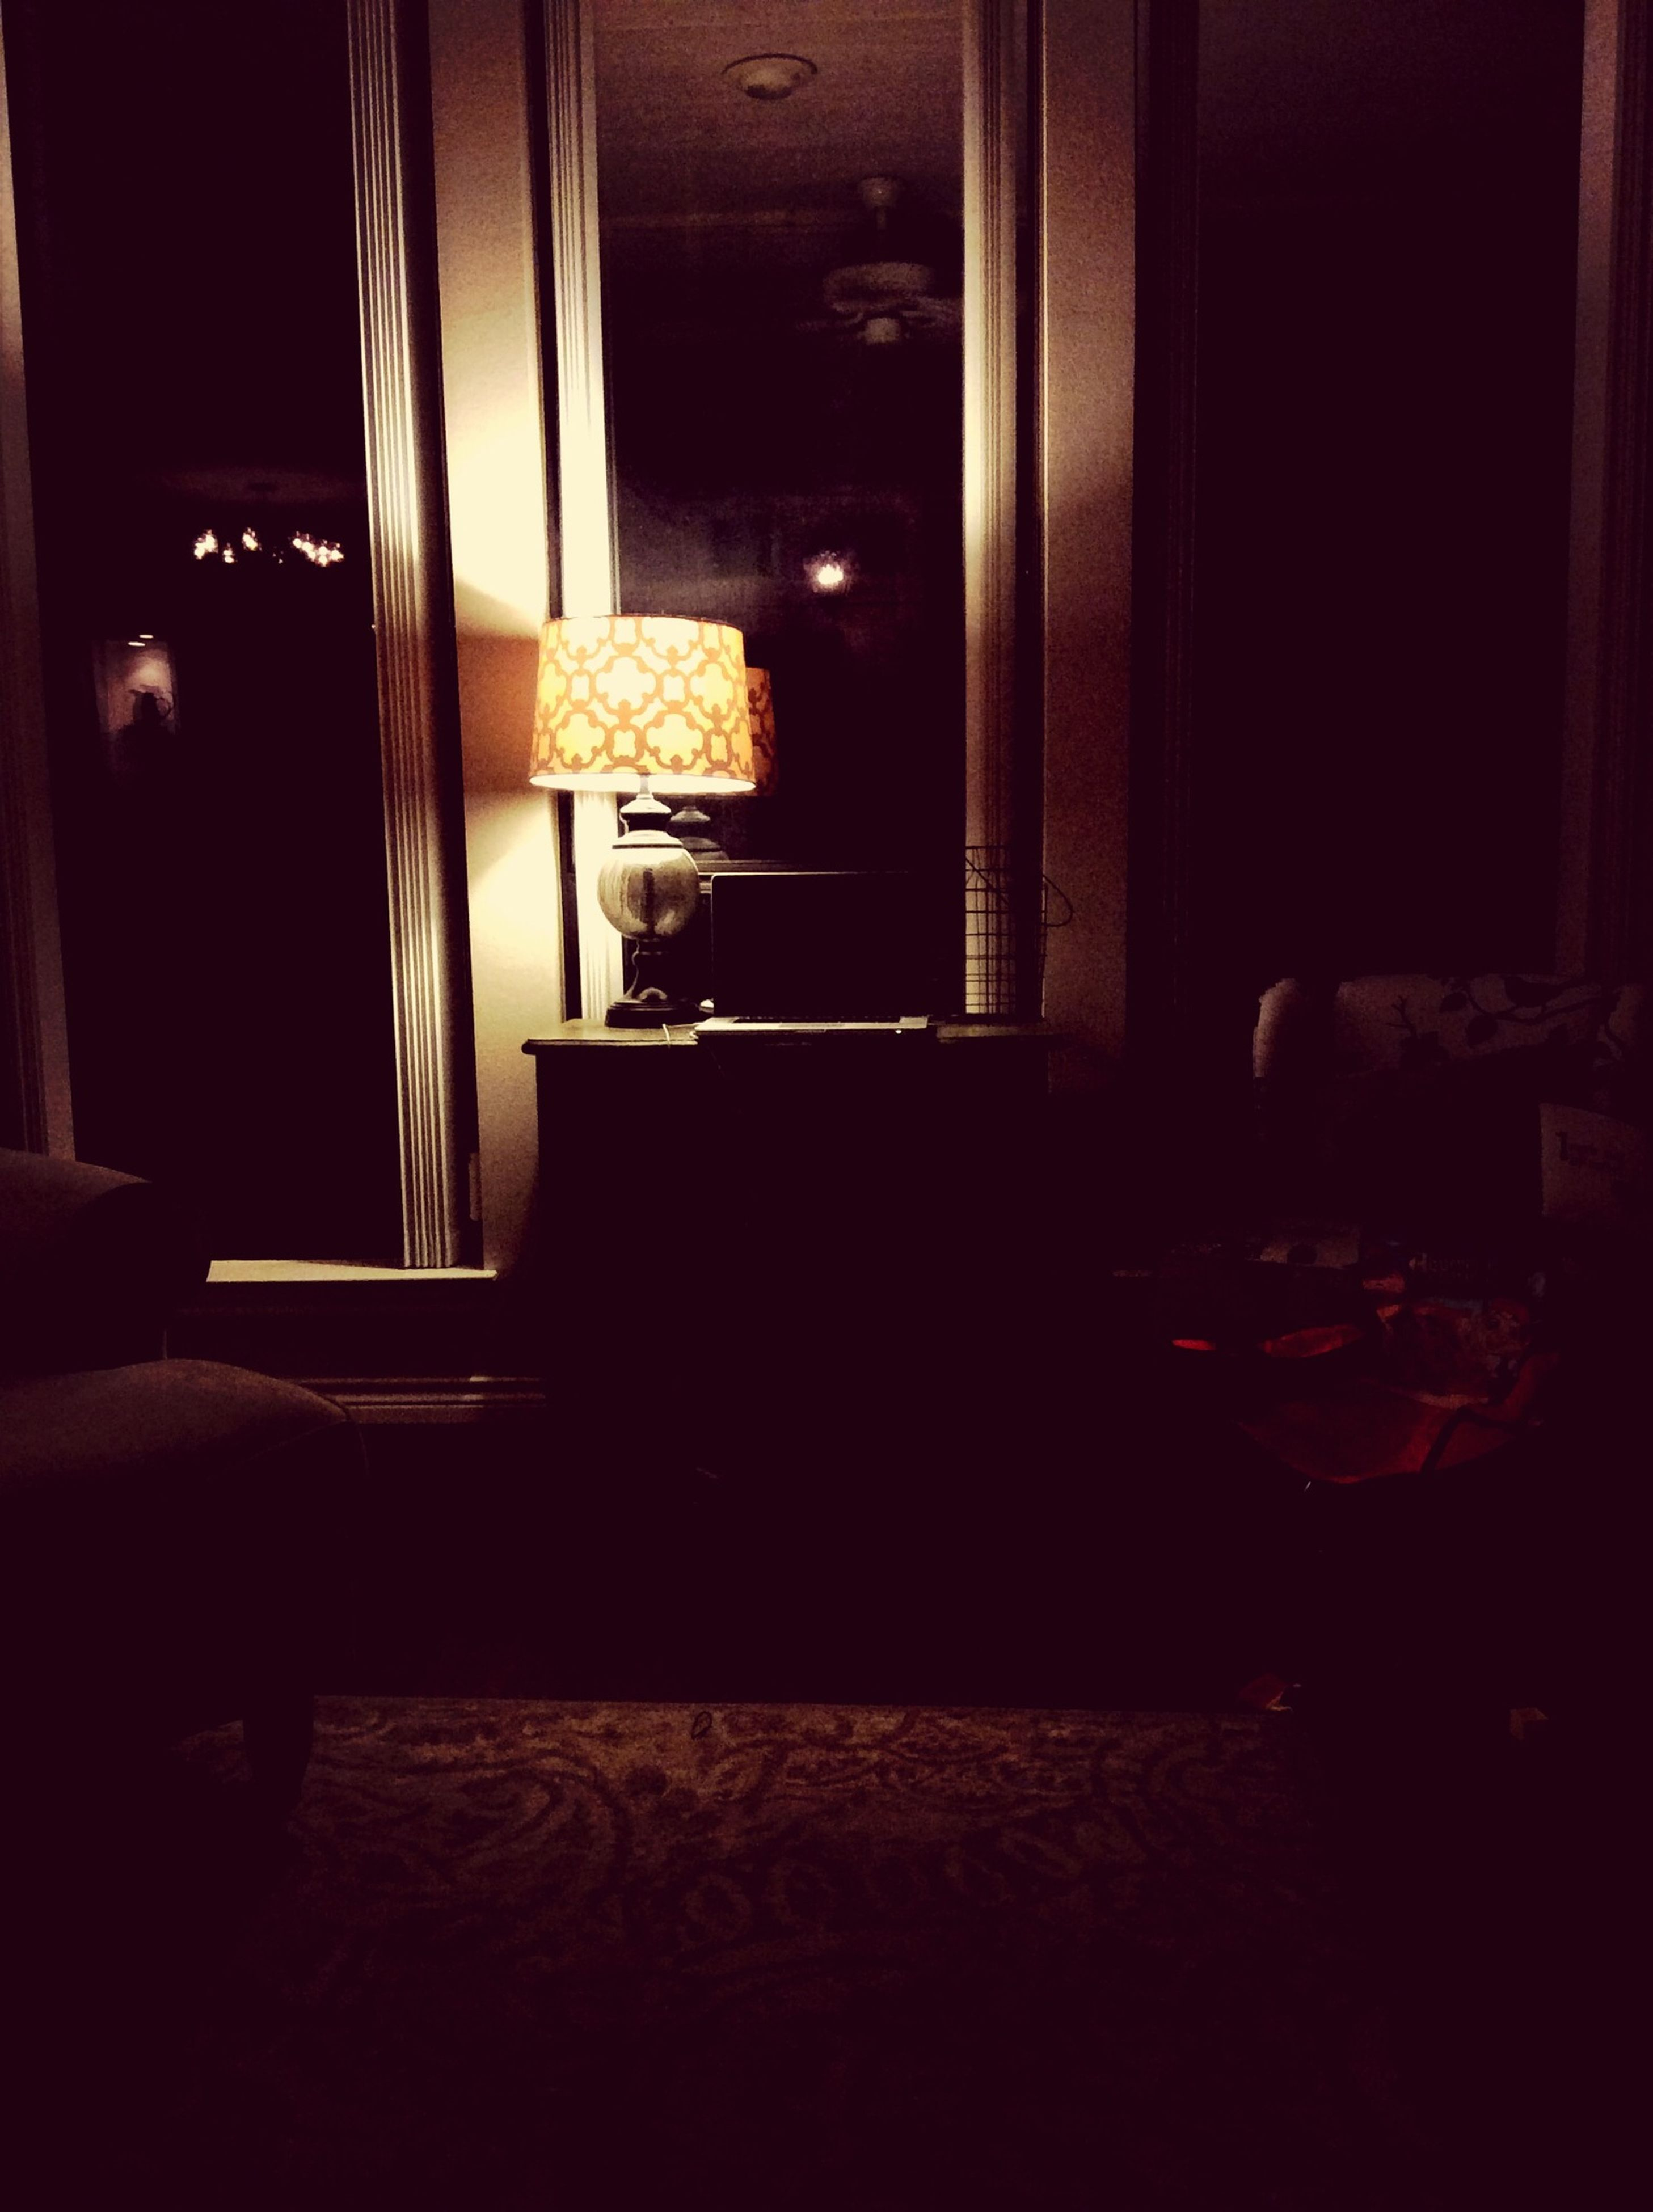 indoors, window, house, home interior, night, illuminated, dark, built structure, architecture, table, door, glass - material, room, no people, darkroom, wood - material, building exterior, chair, domestic room, transparent